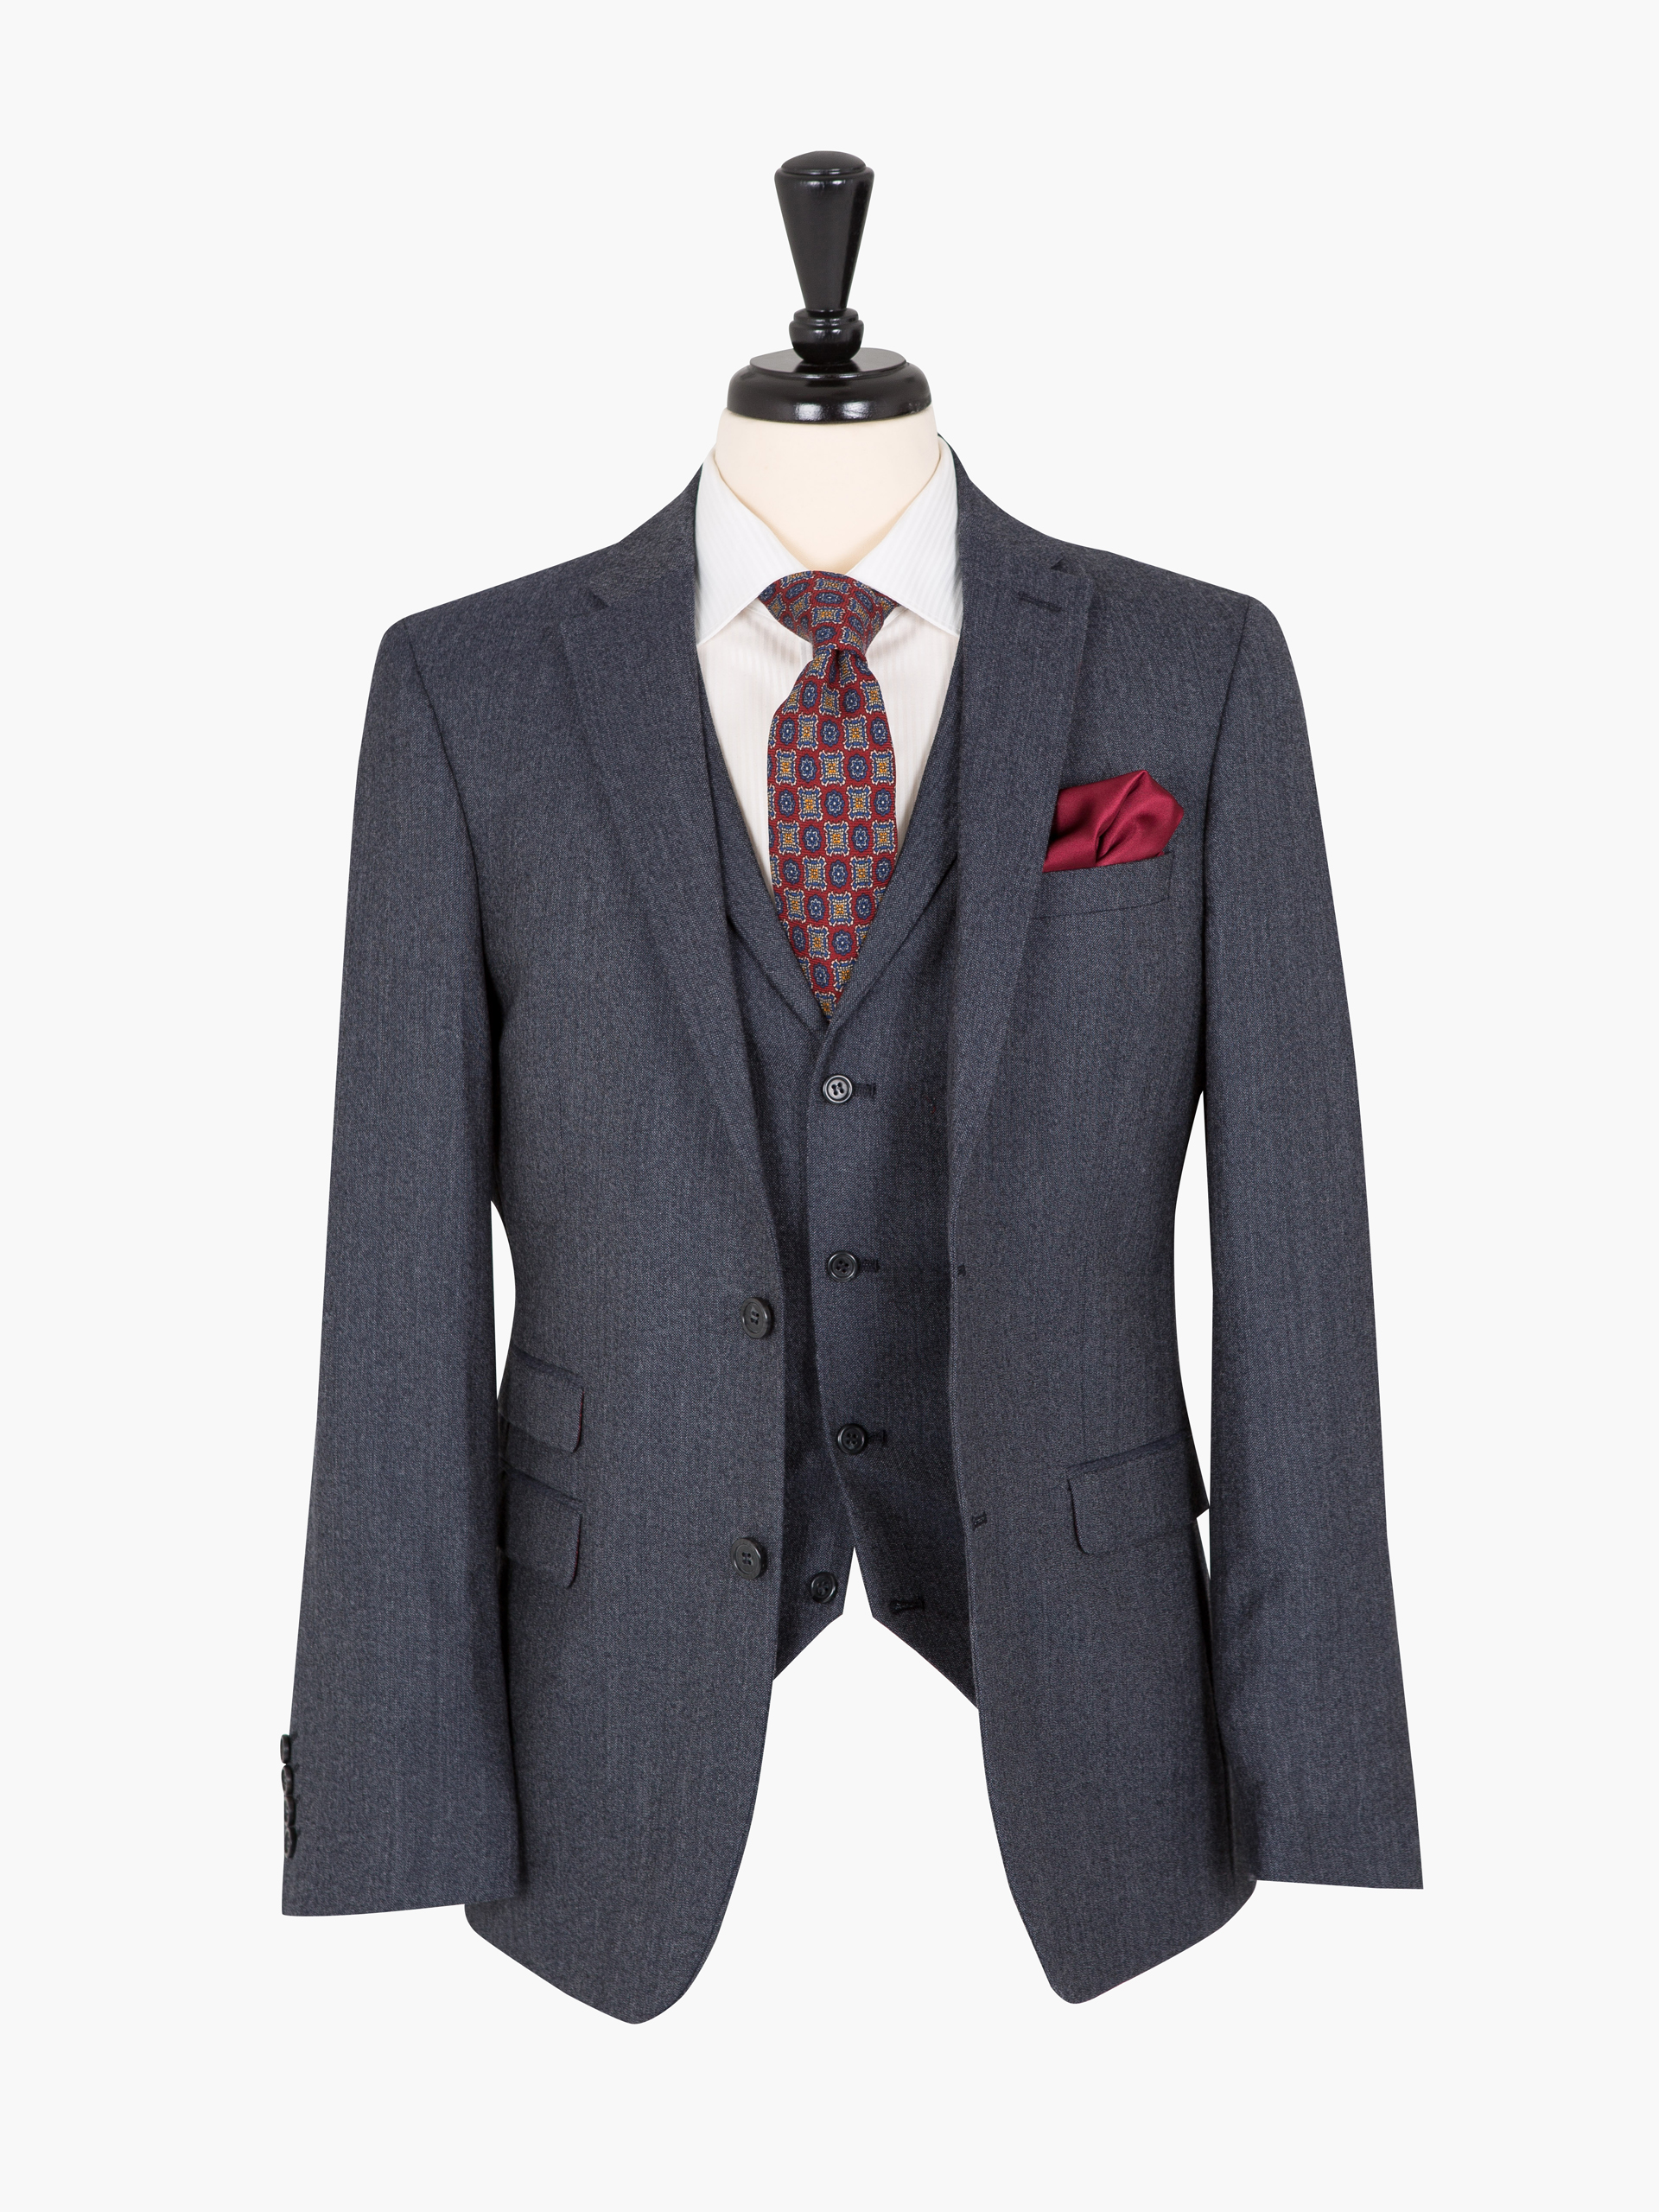 OneSix5ive Grey Luxury Tailored Fit Suit Three Piece Suit 38 S